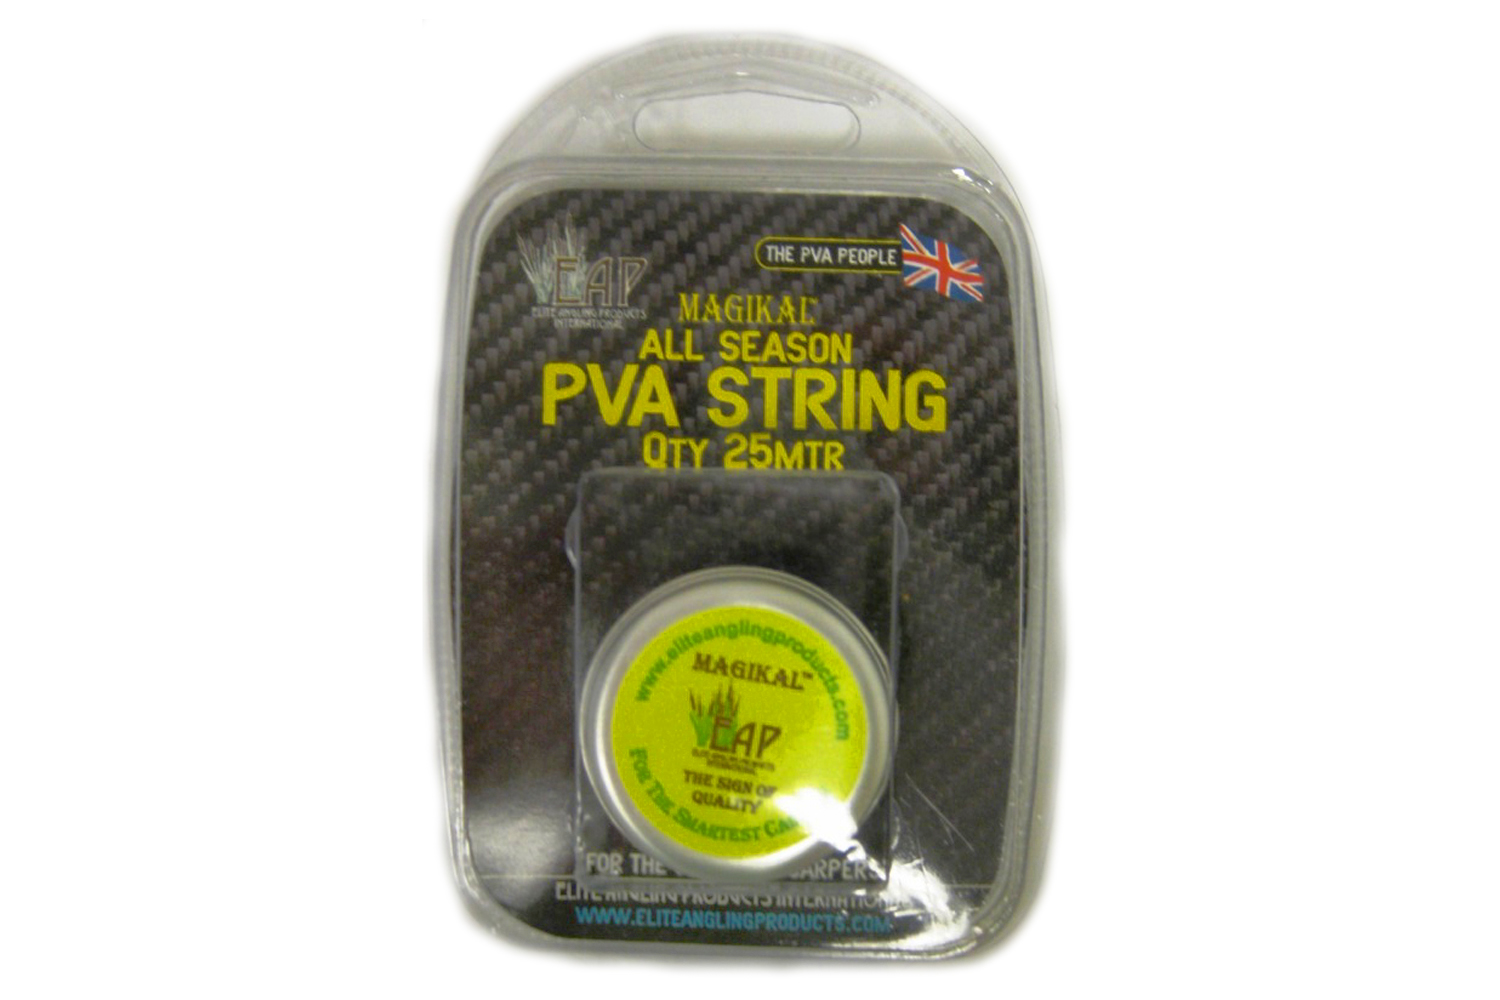 EAP PVA String All Season